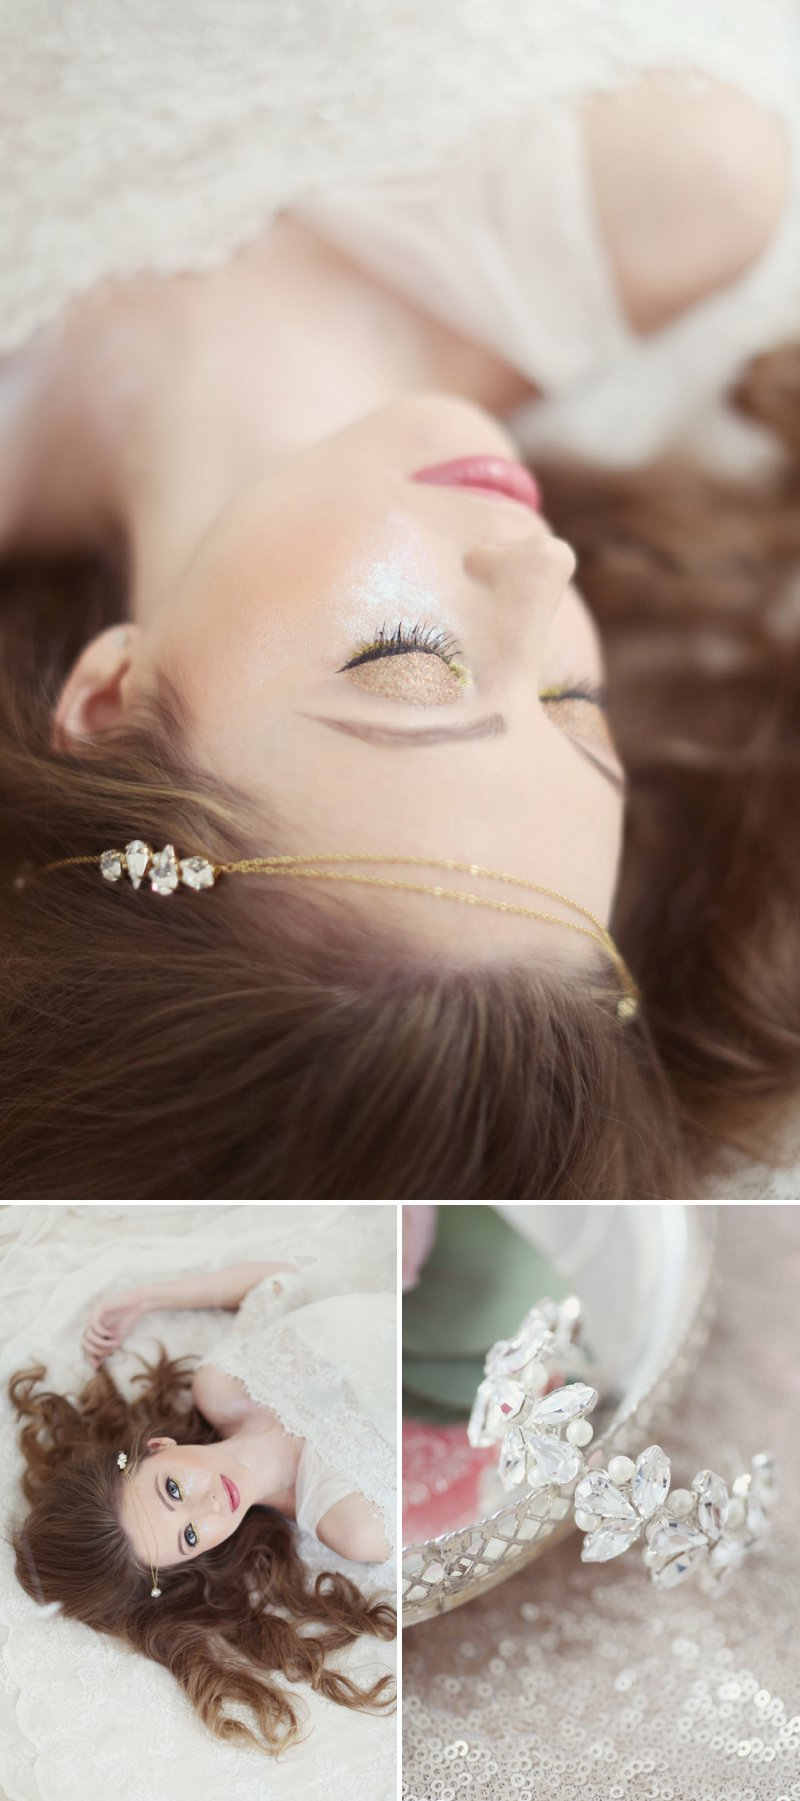 Pastel Valentines Day Inspired Bridal Shoot Featuring Hair Accessories From Corrine Smith Design With Flowers From I Heart Flowers And Images By Eva Sanders Photography 7